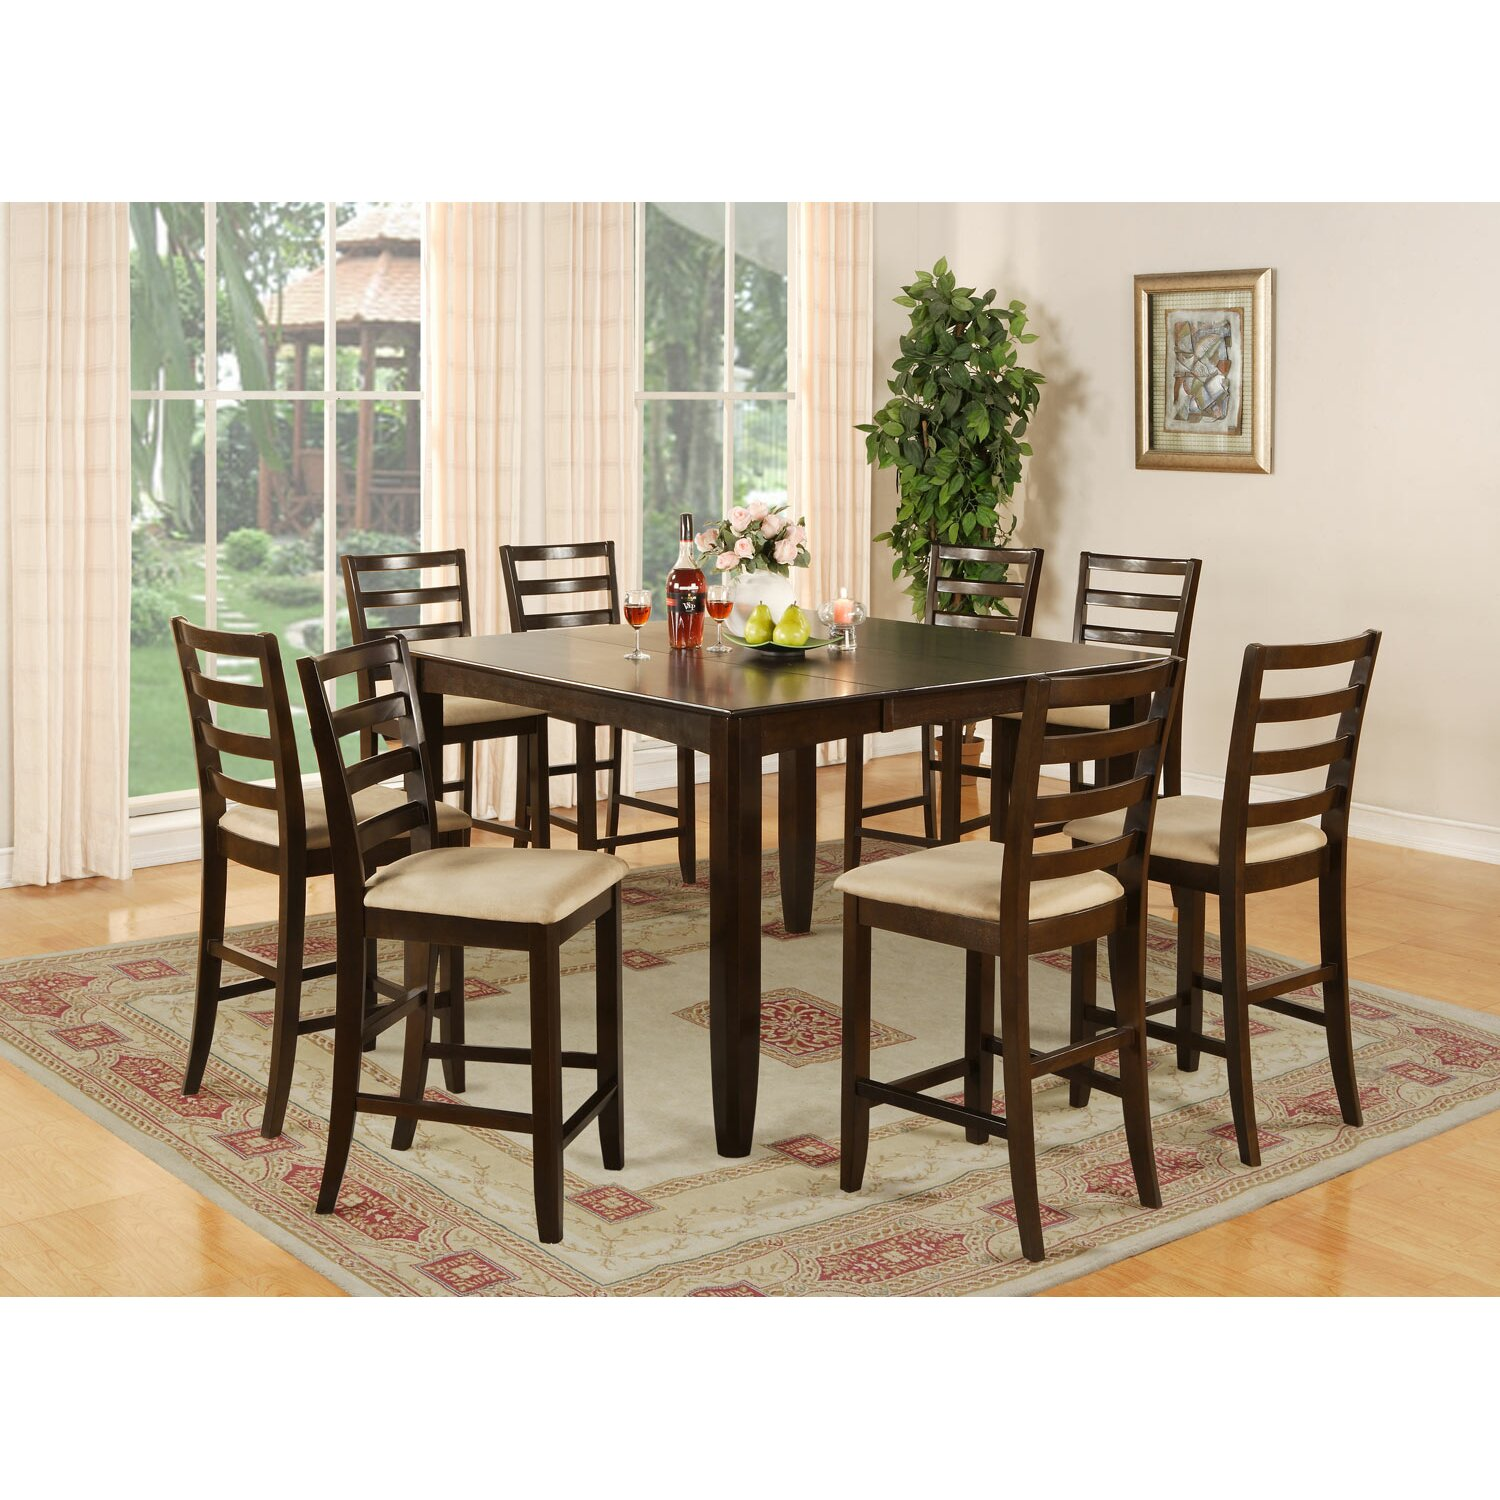 Red barrel studio tamarack 9 piece counter height dining for 9 piece dining room set counter height